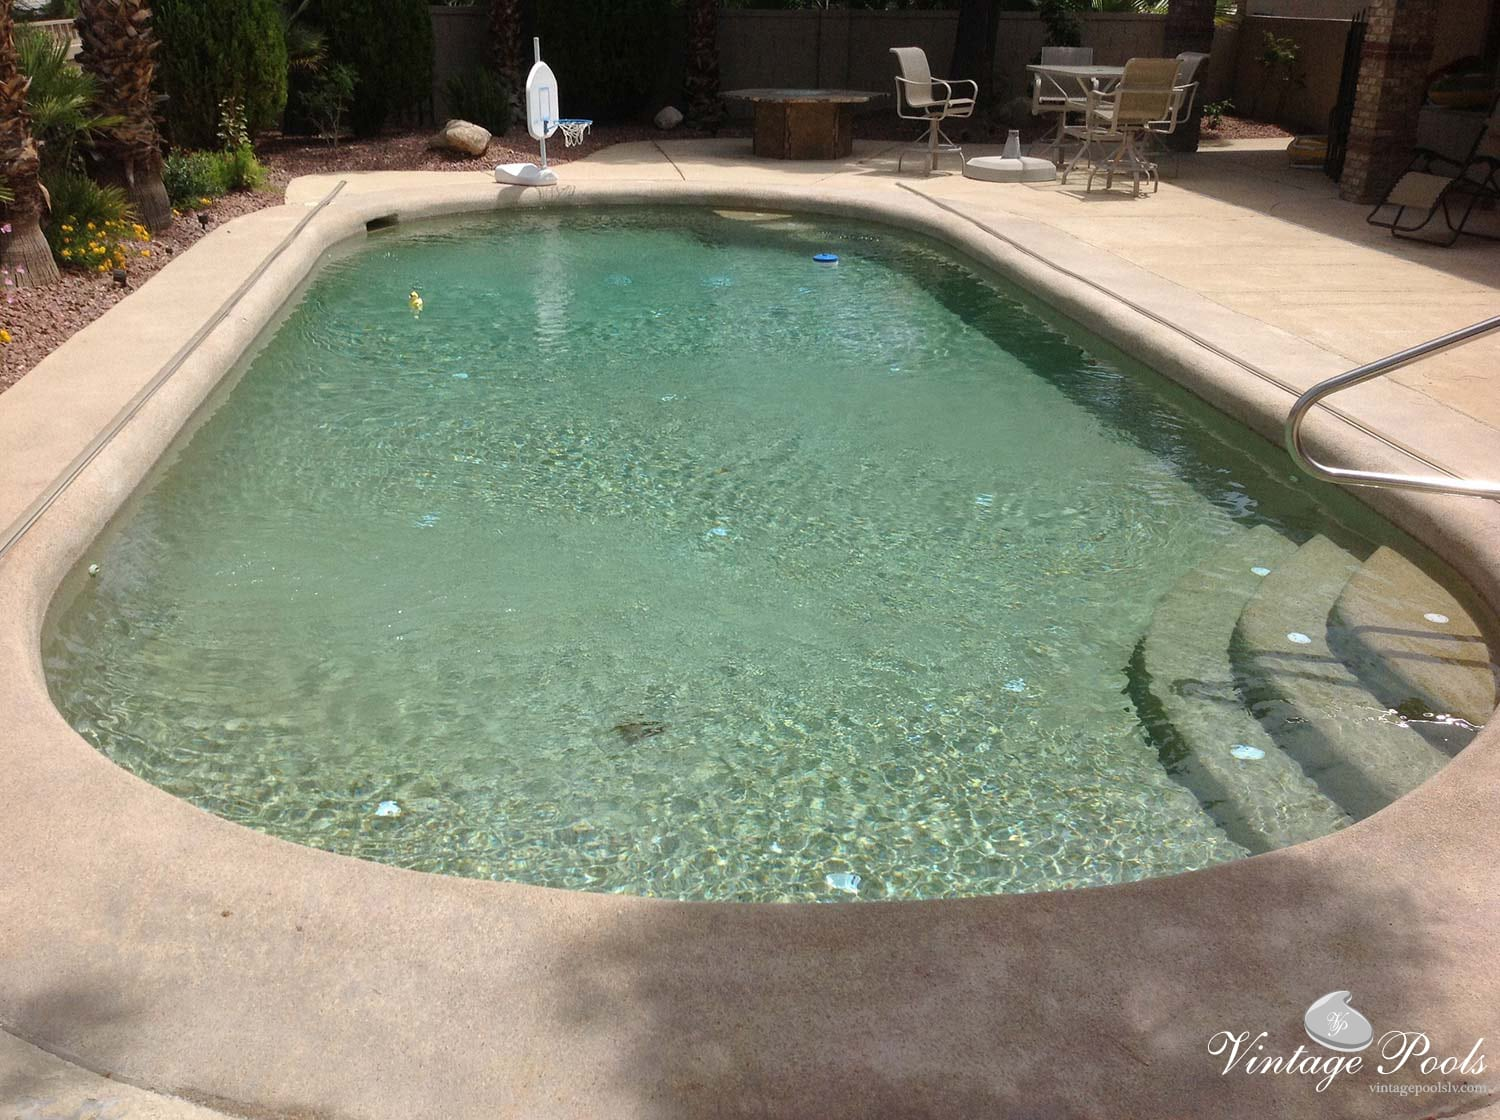 Vintage Pools Las Vegas Custom Swimming Pool Builder